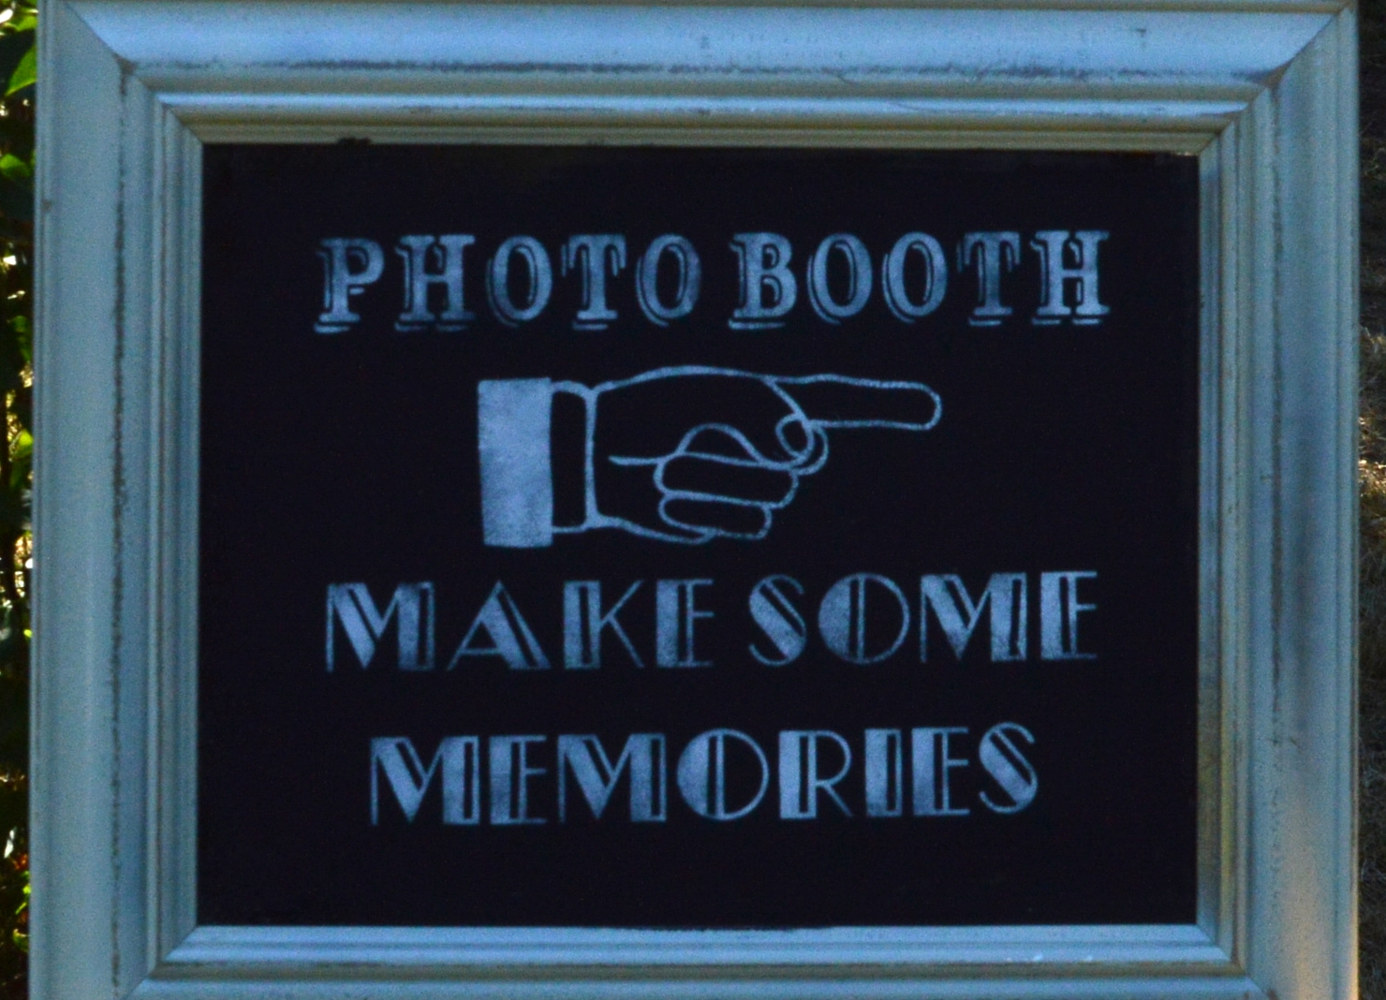 Black Board signs by Bev Robertson